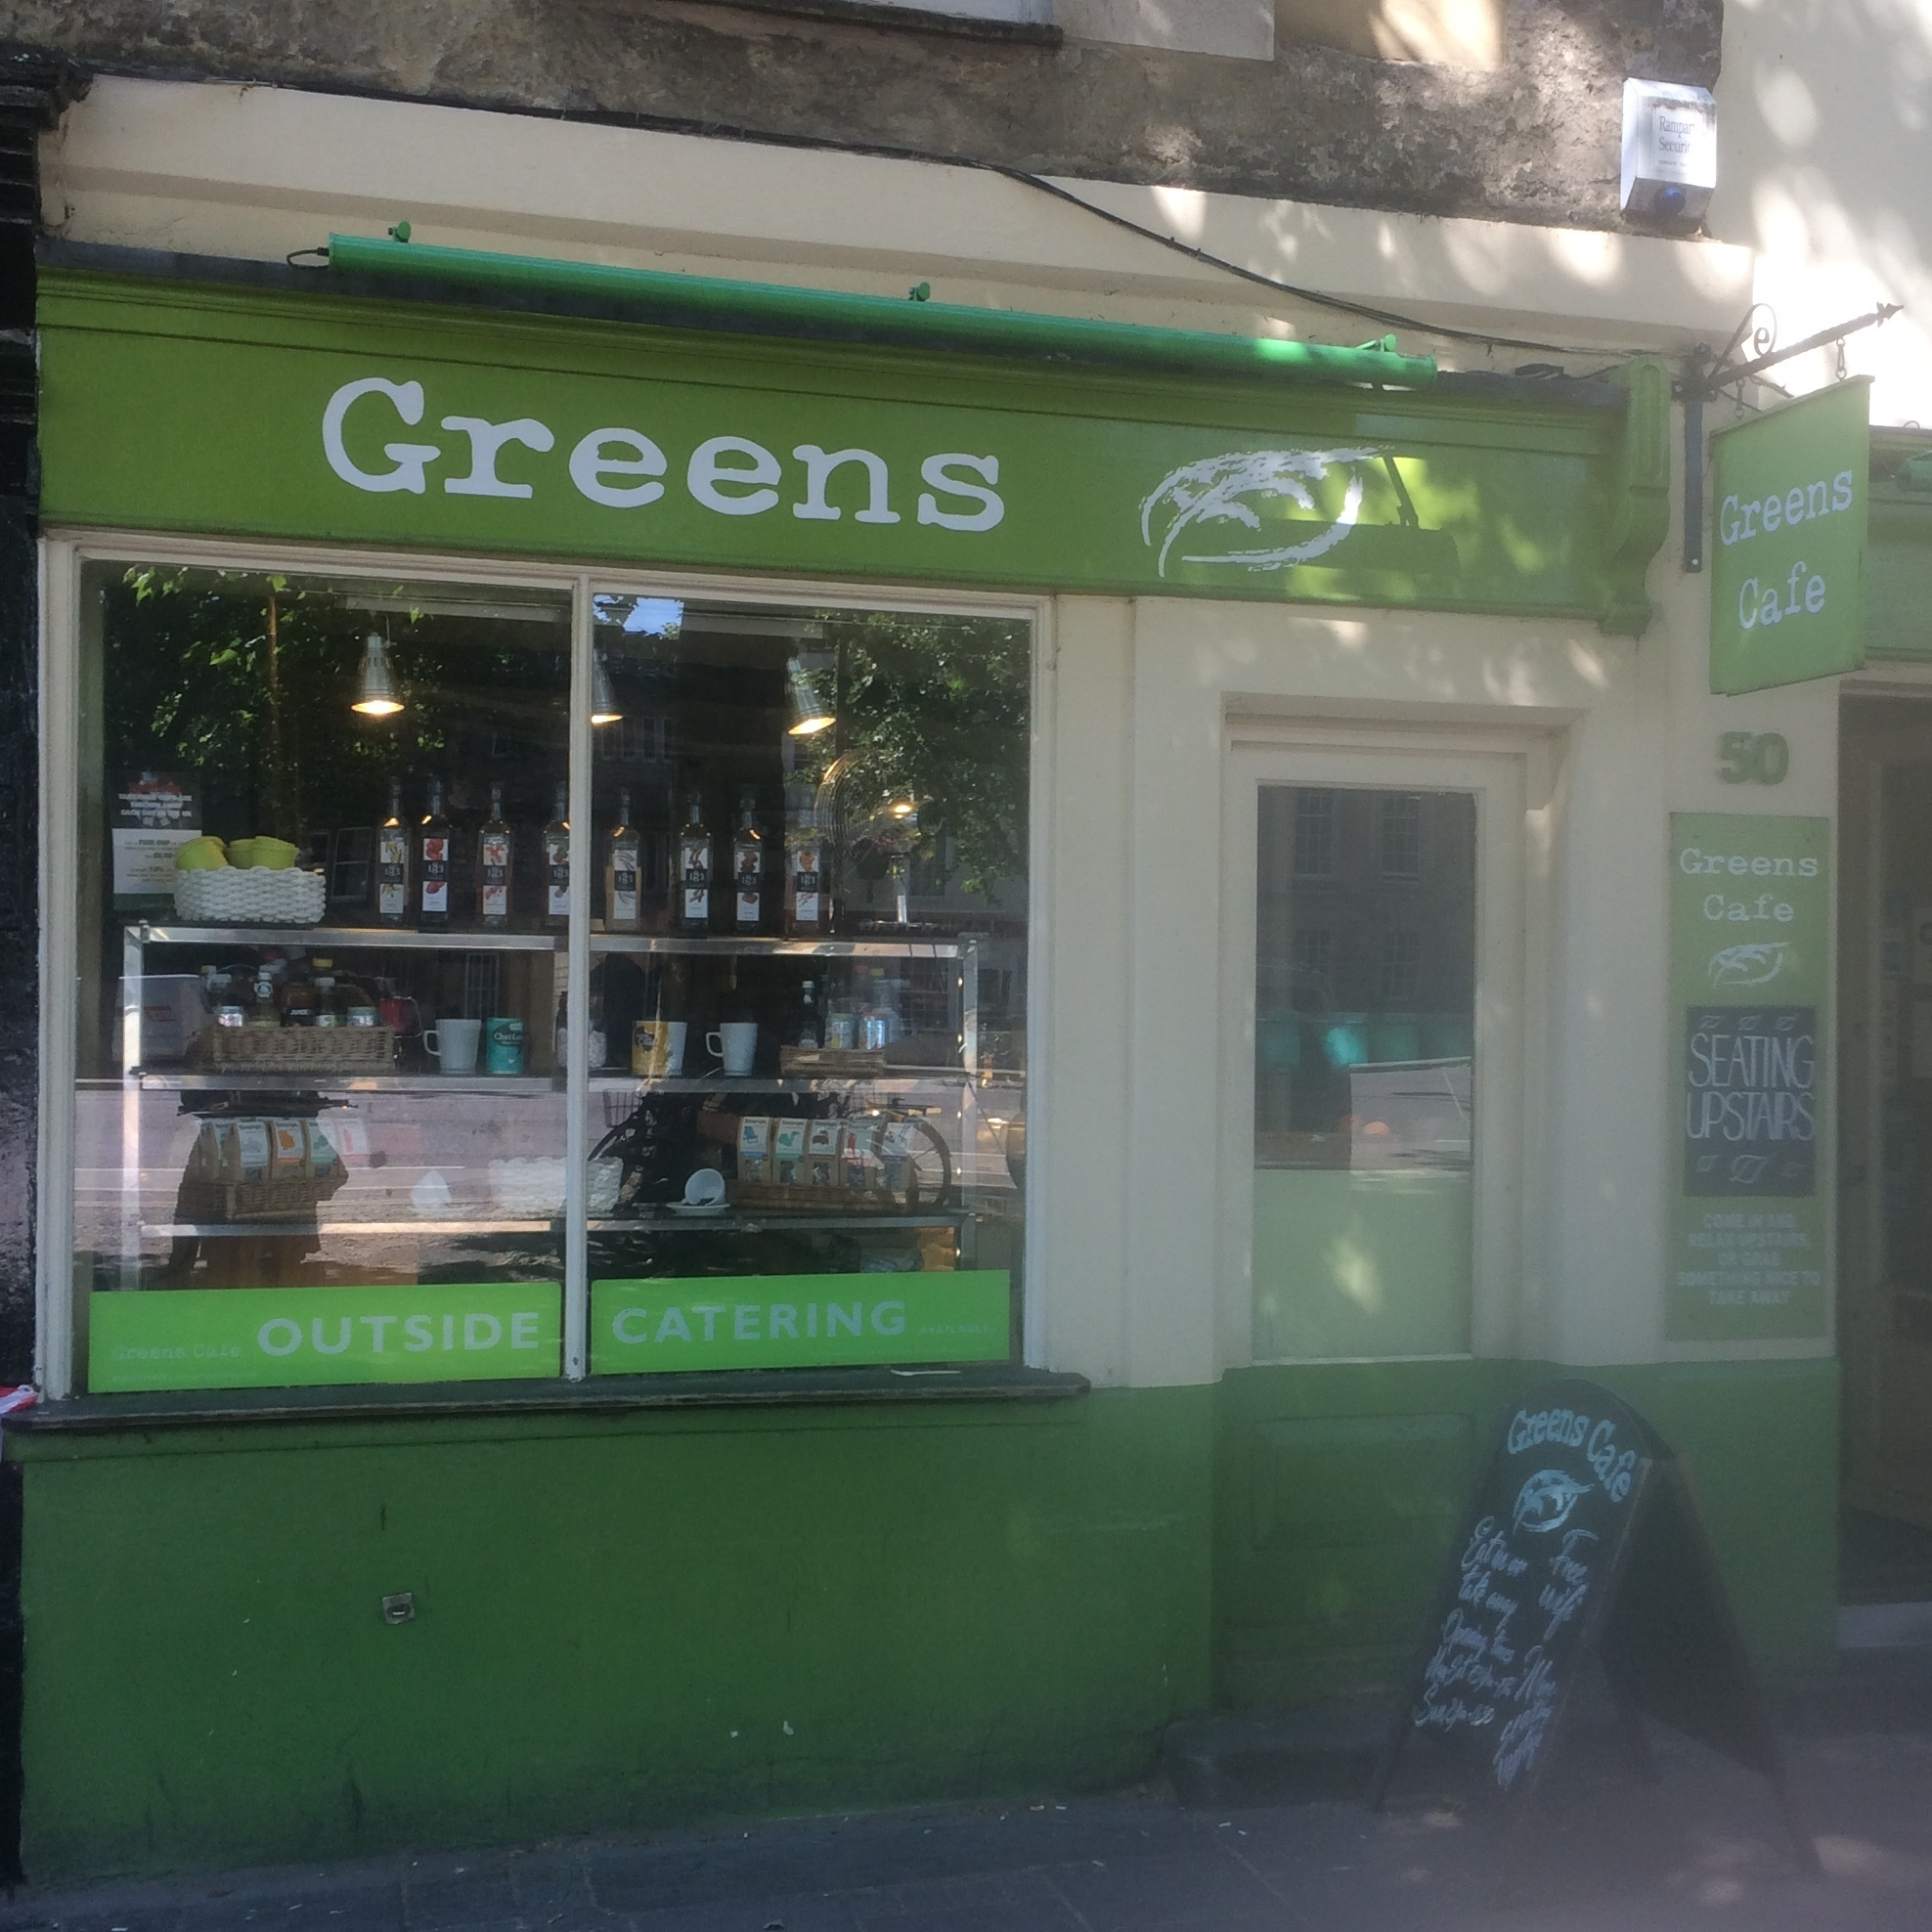 Greens Cafe - A local coffee and sandwich chop on St Giles, Greens Cafe is one to remember. It lives up to its name: you can refill here and buy fair-trade products.50 St Giles', OX1 3LUwww.greenscafe.co.uk